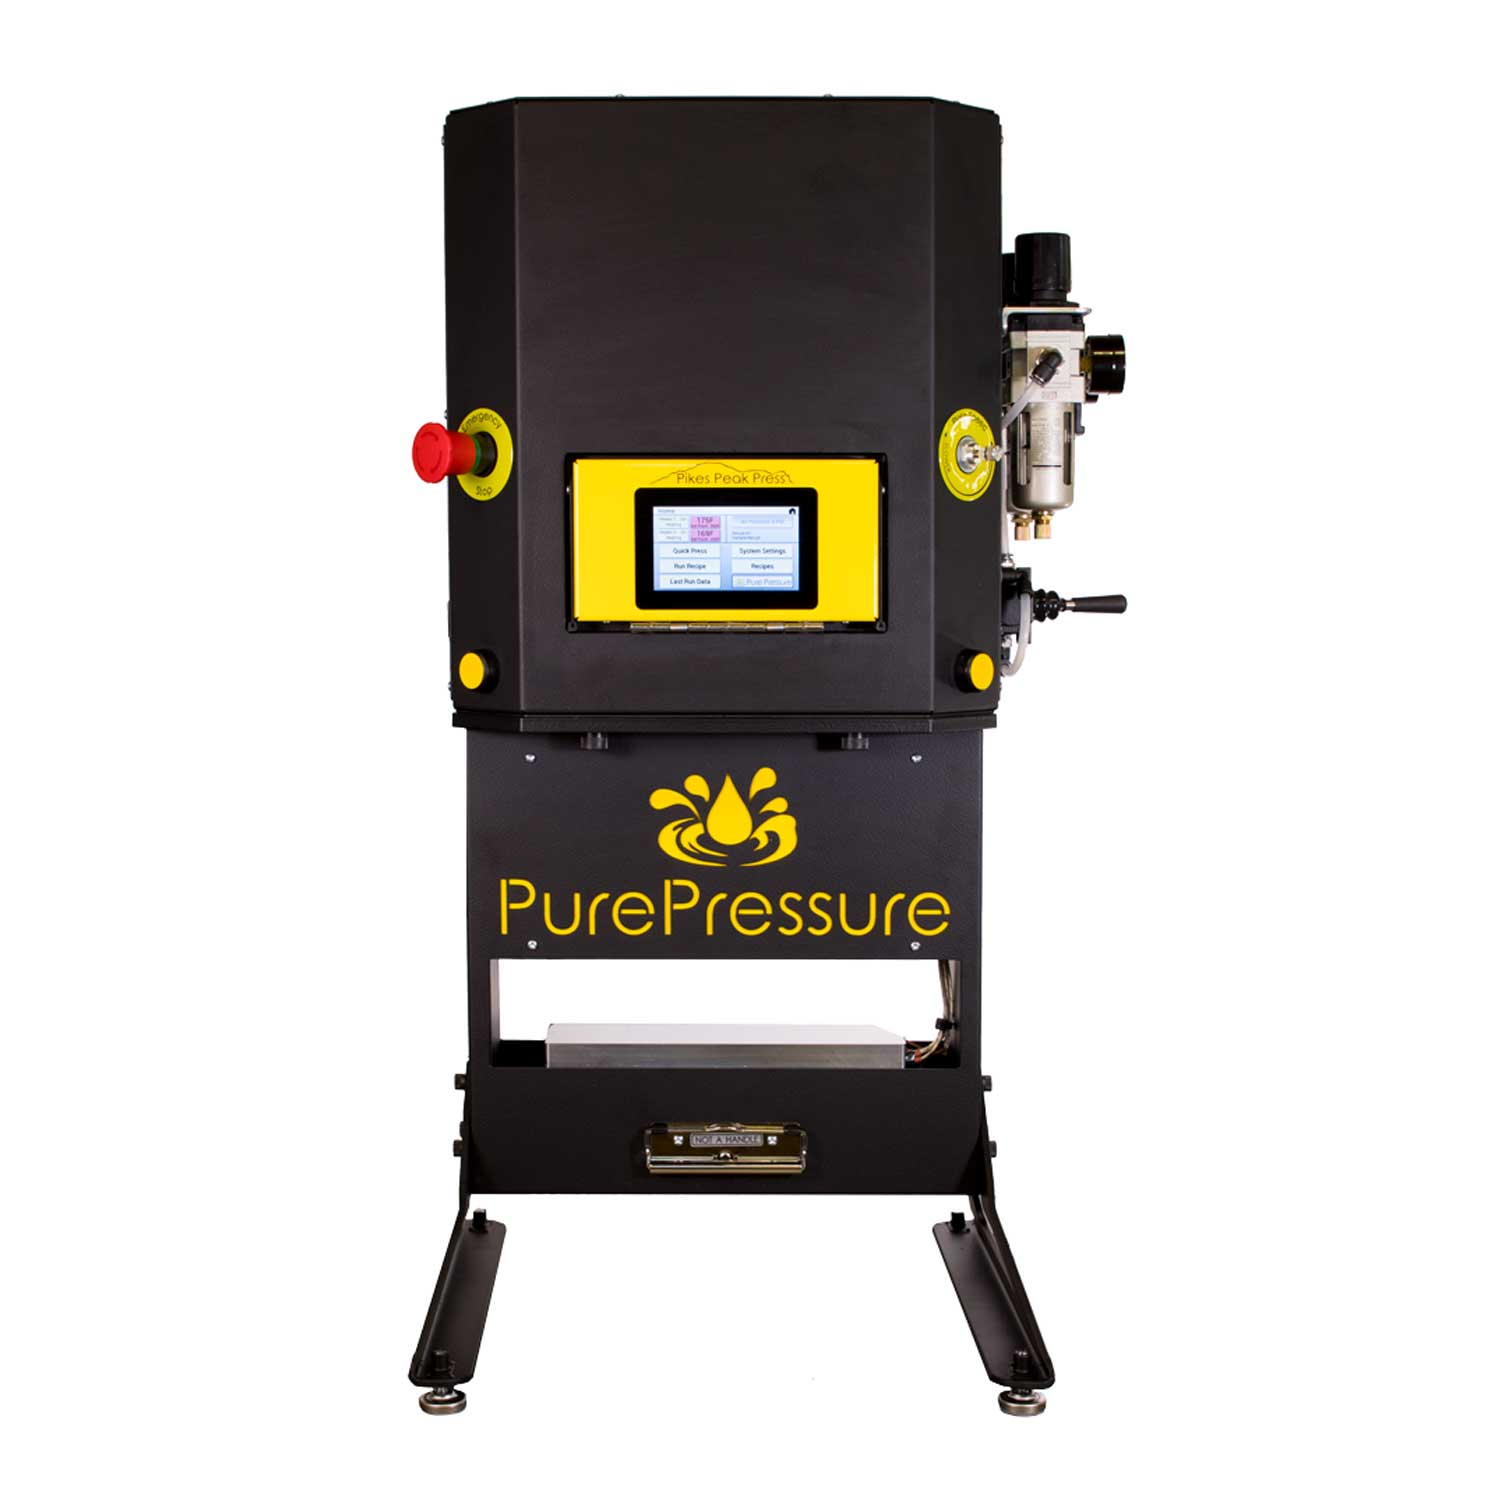 PurePressure Rosin Press